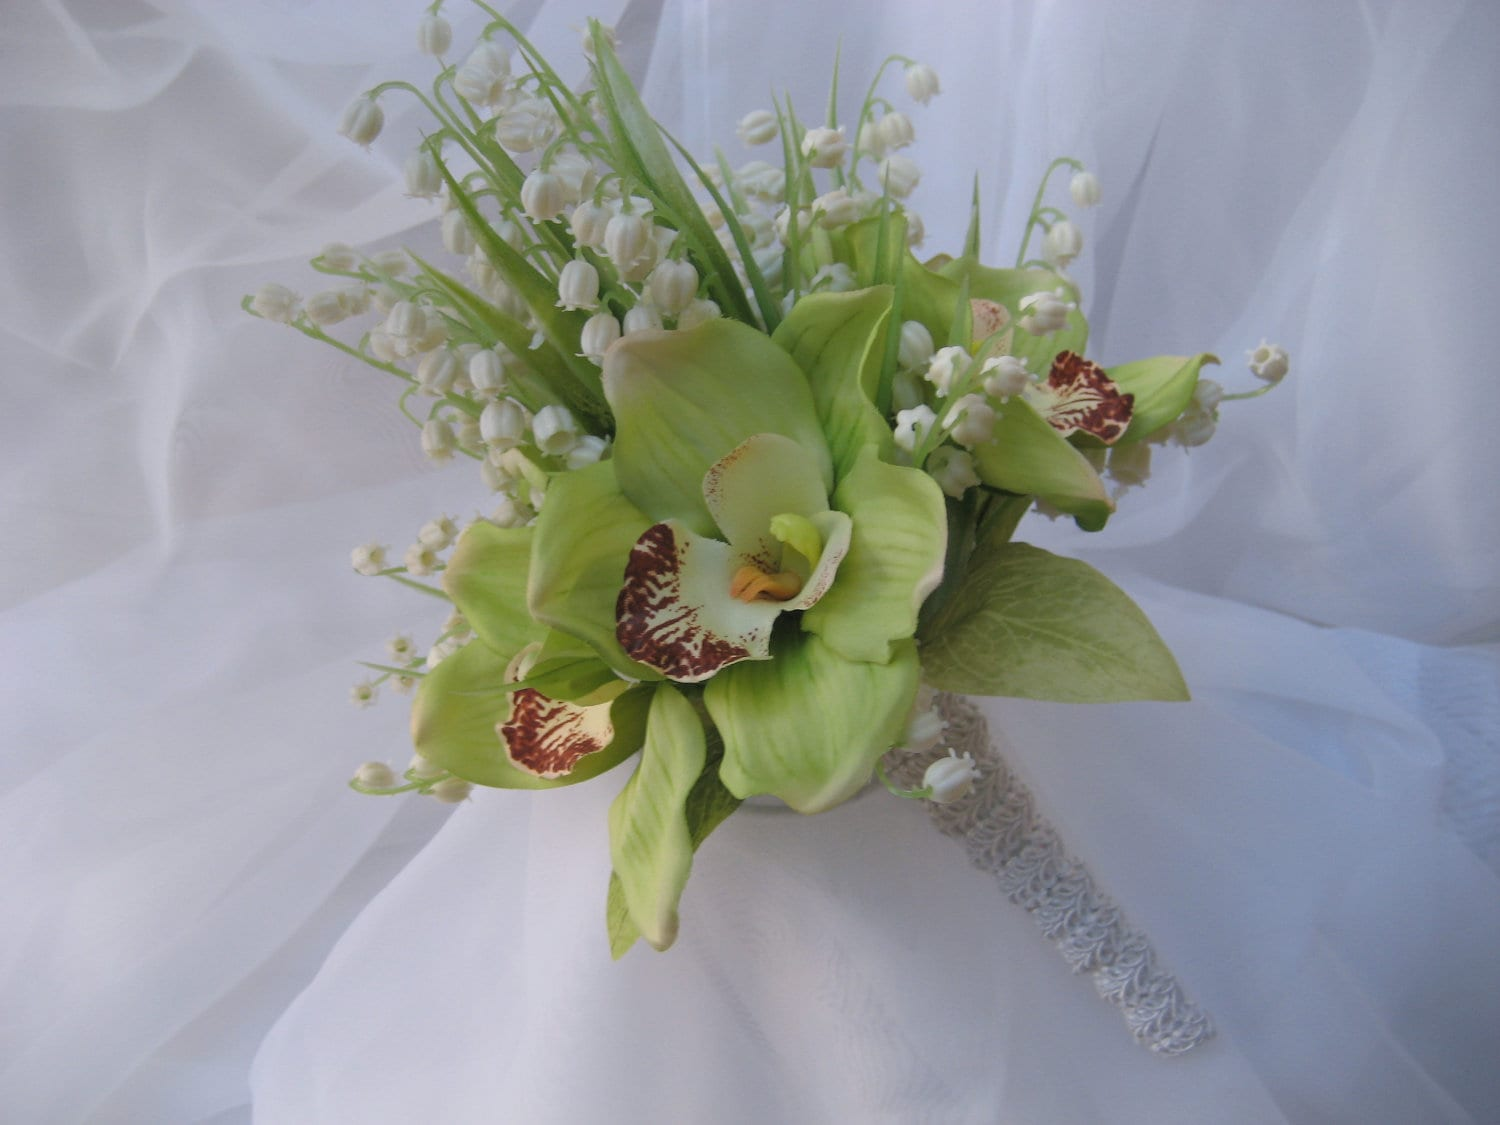 Lily Of The Valley Wedding Bouquet: Tropical Wedding Bouquet With Cymbidium Orchids And Lily Of